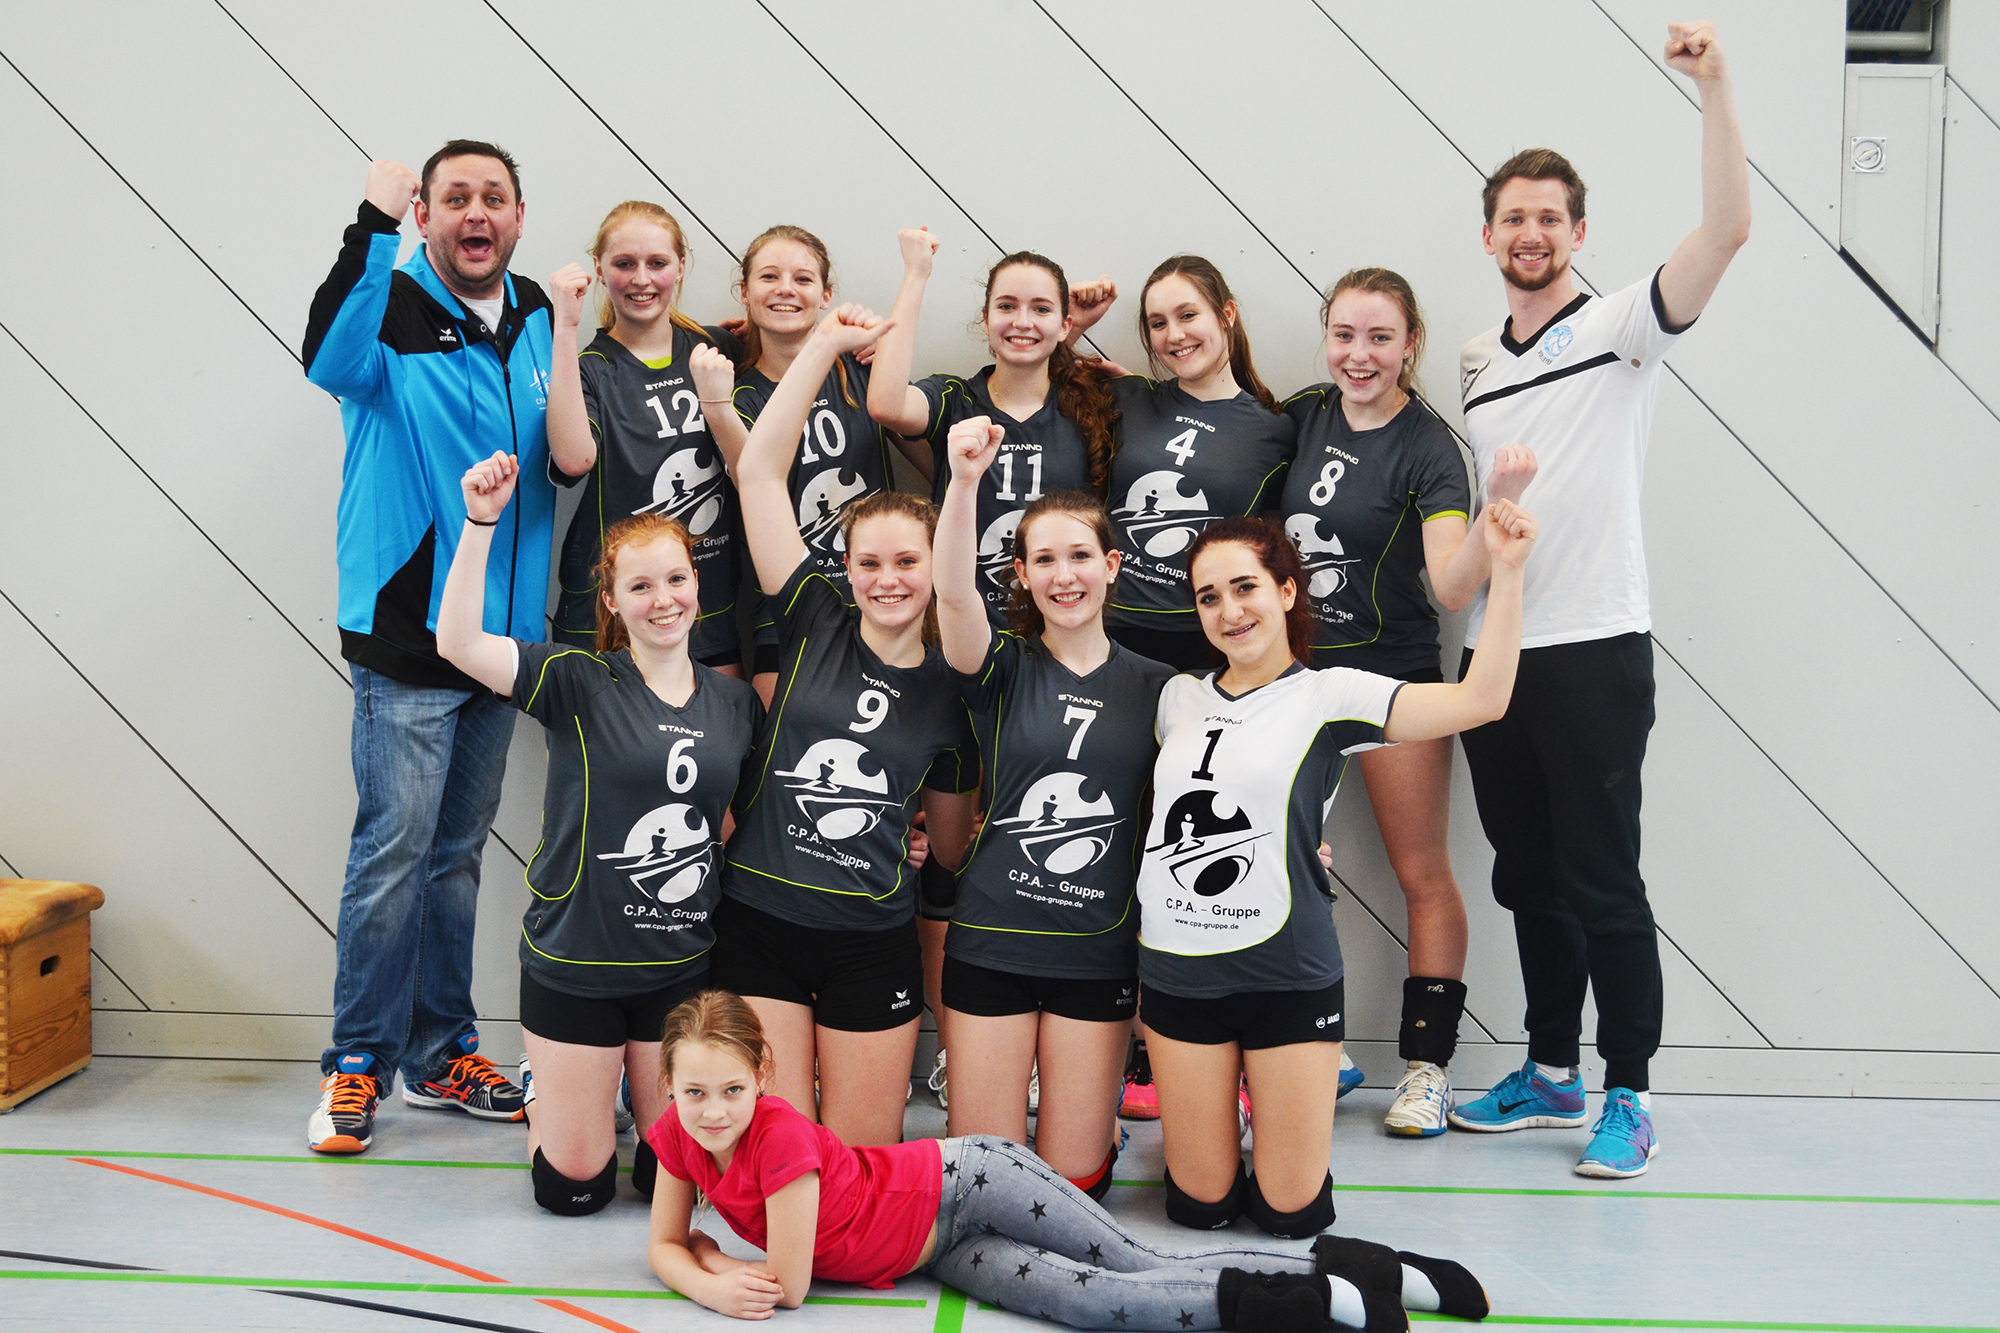 N.H. Young Volleys - Jugend U18